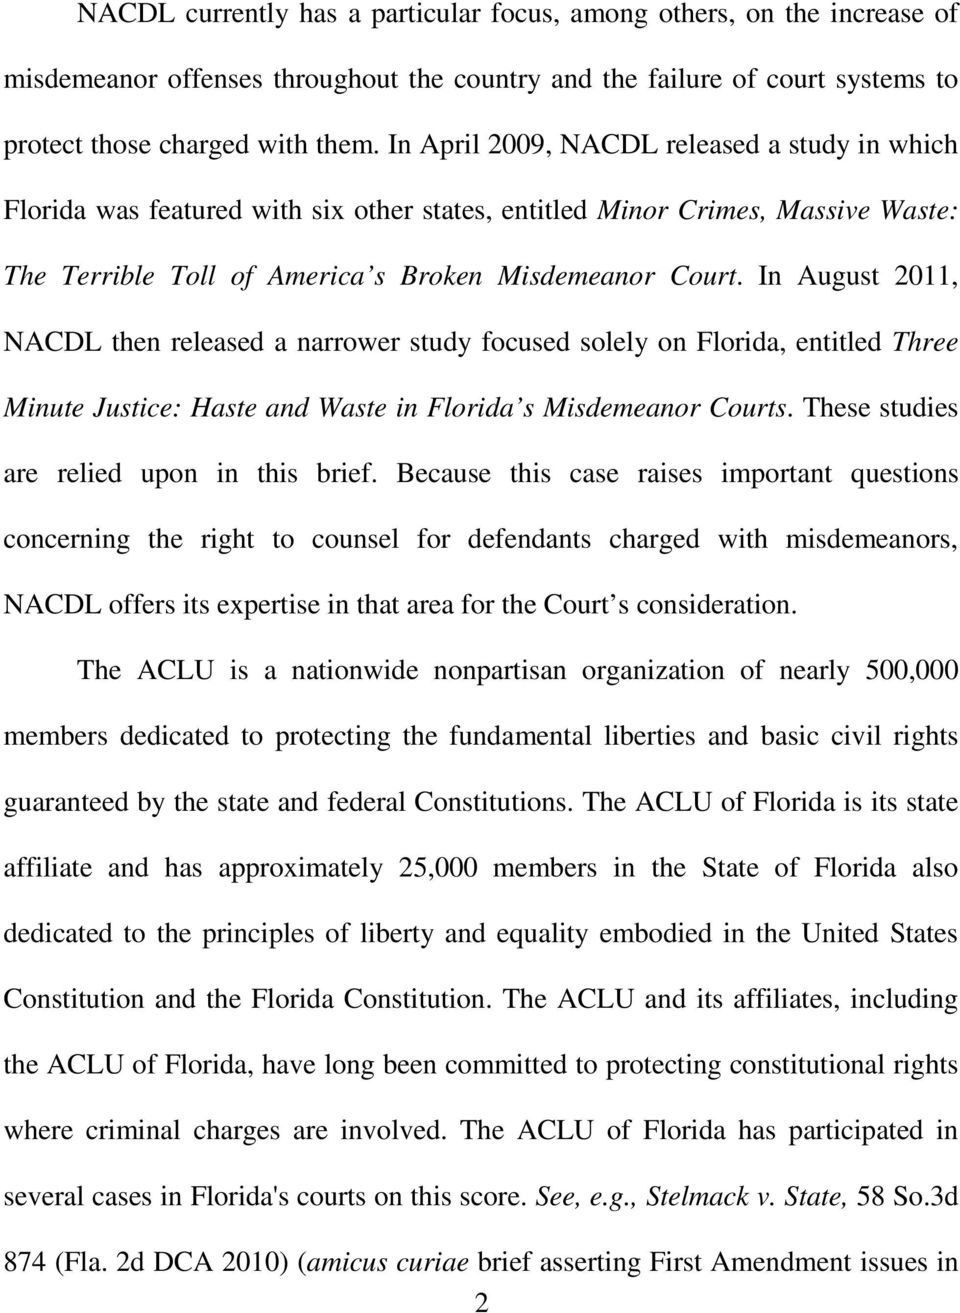 In August 2011, NACDL then released a narrower study focused solely on Florida, entitled Three Minute Justice: Haste and Waste in Florida s Misdemeanor Courts.